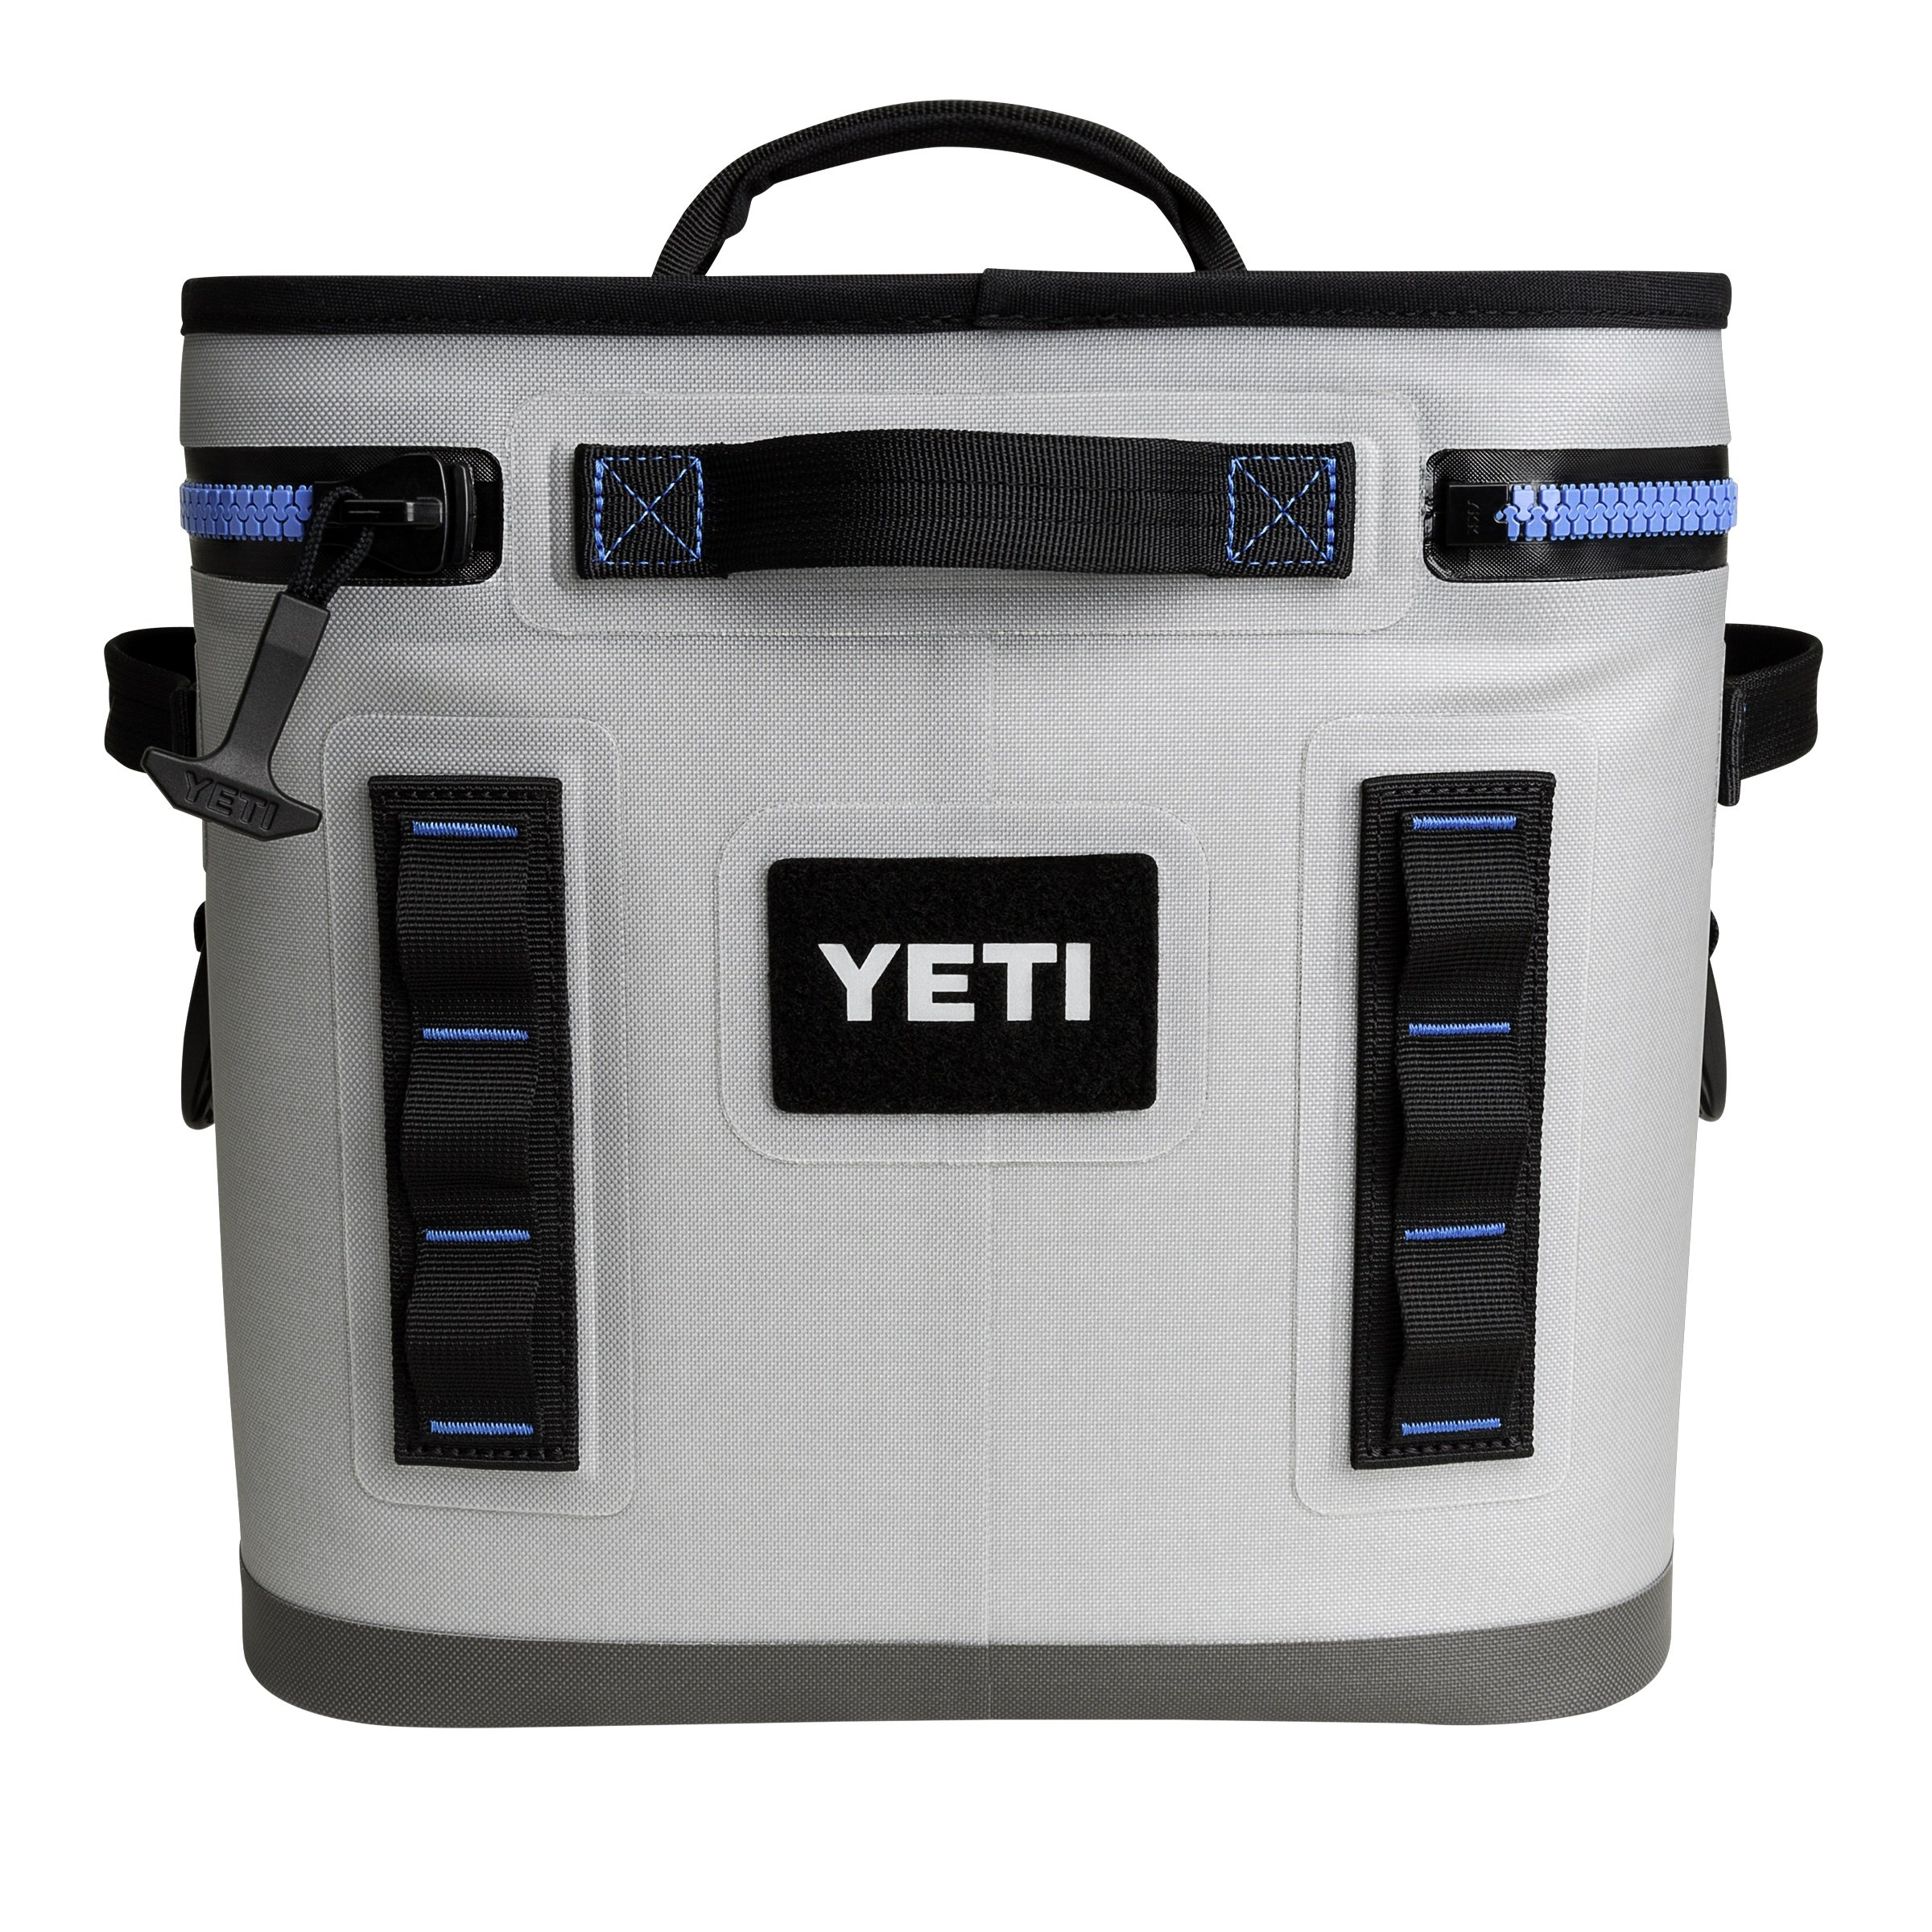 YETI Hopper Flip 12 Portable Cooler with Top Handle, Fog Gray by YETI (Image #2)